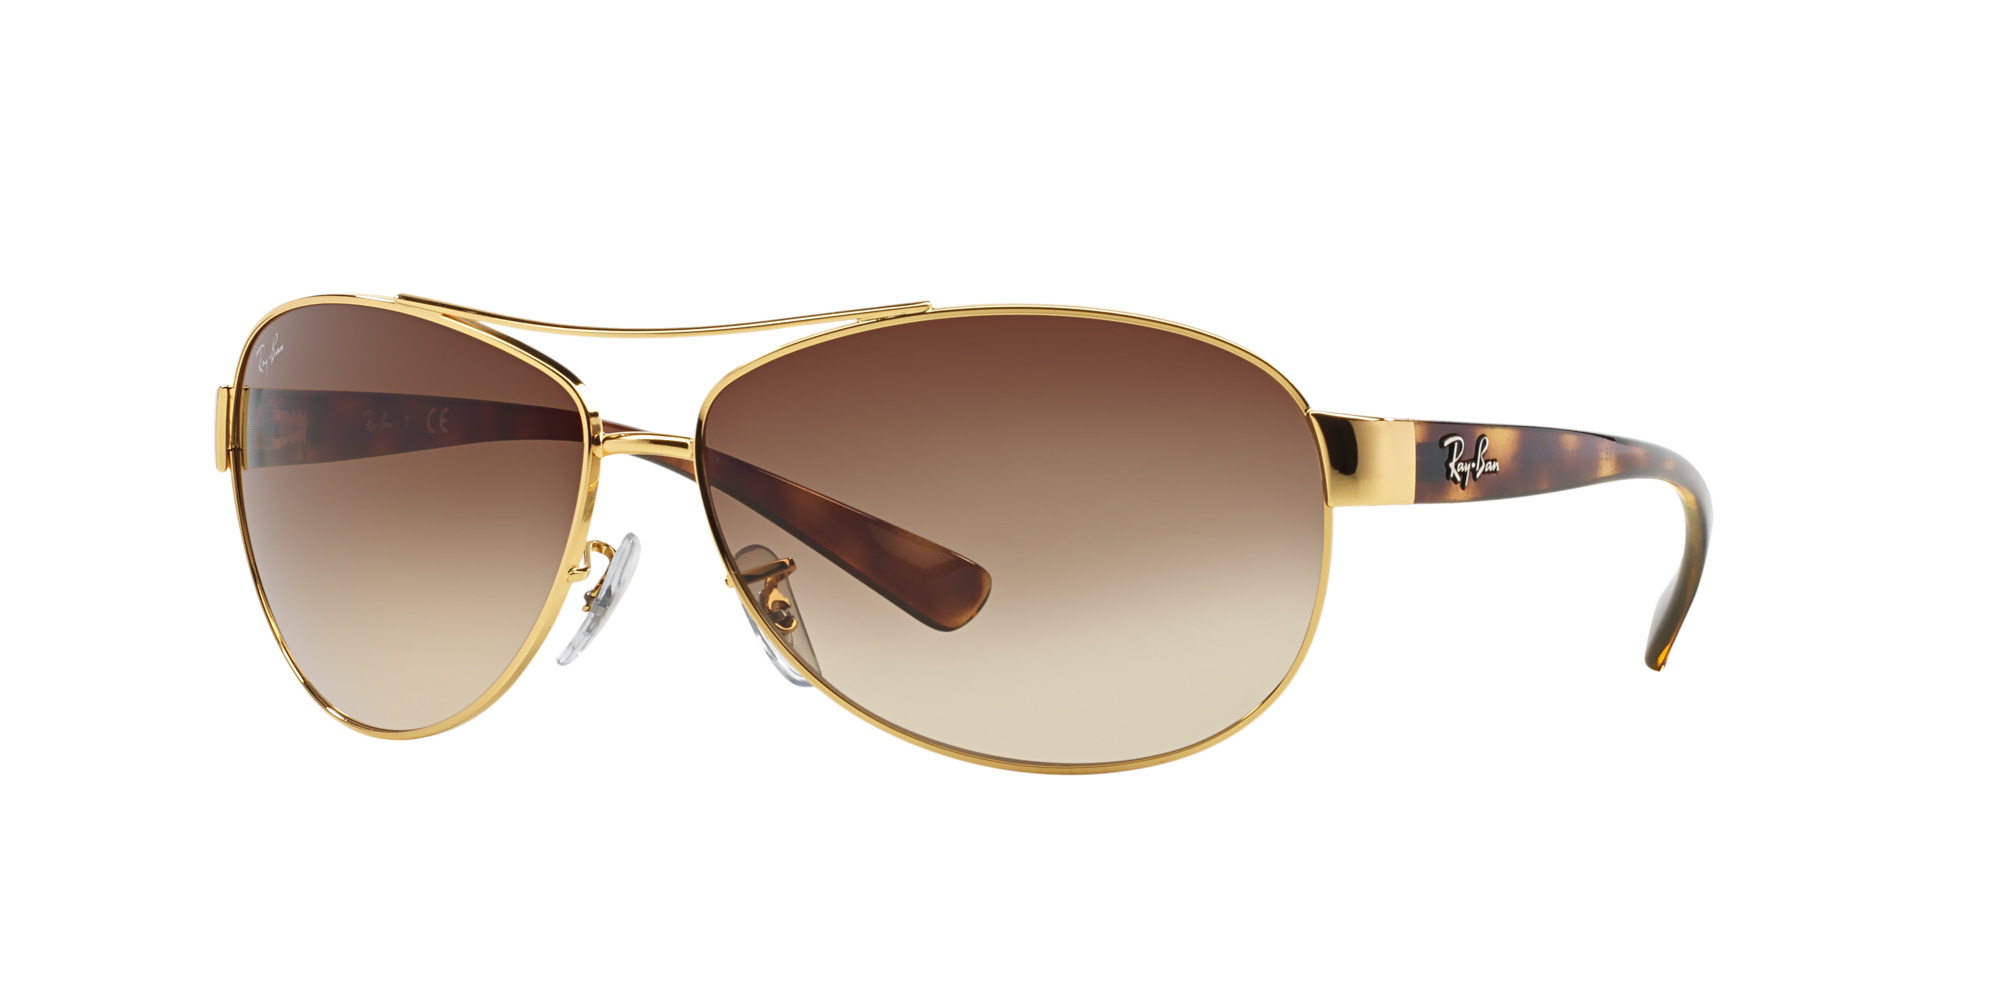 592c8b2b04 Details about New Ray Ban RB3386-001 13-67 Gold Havana   Brown Gradient  67mm Sunglasses